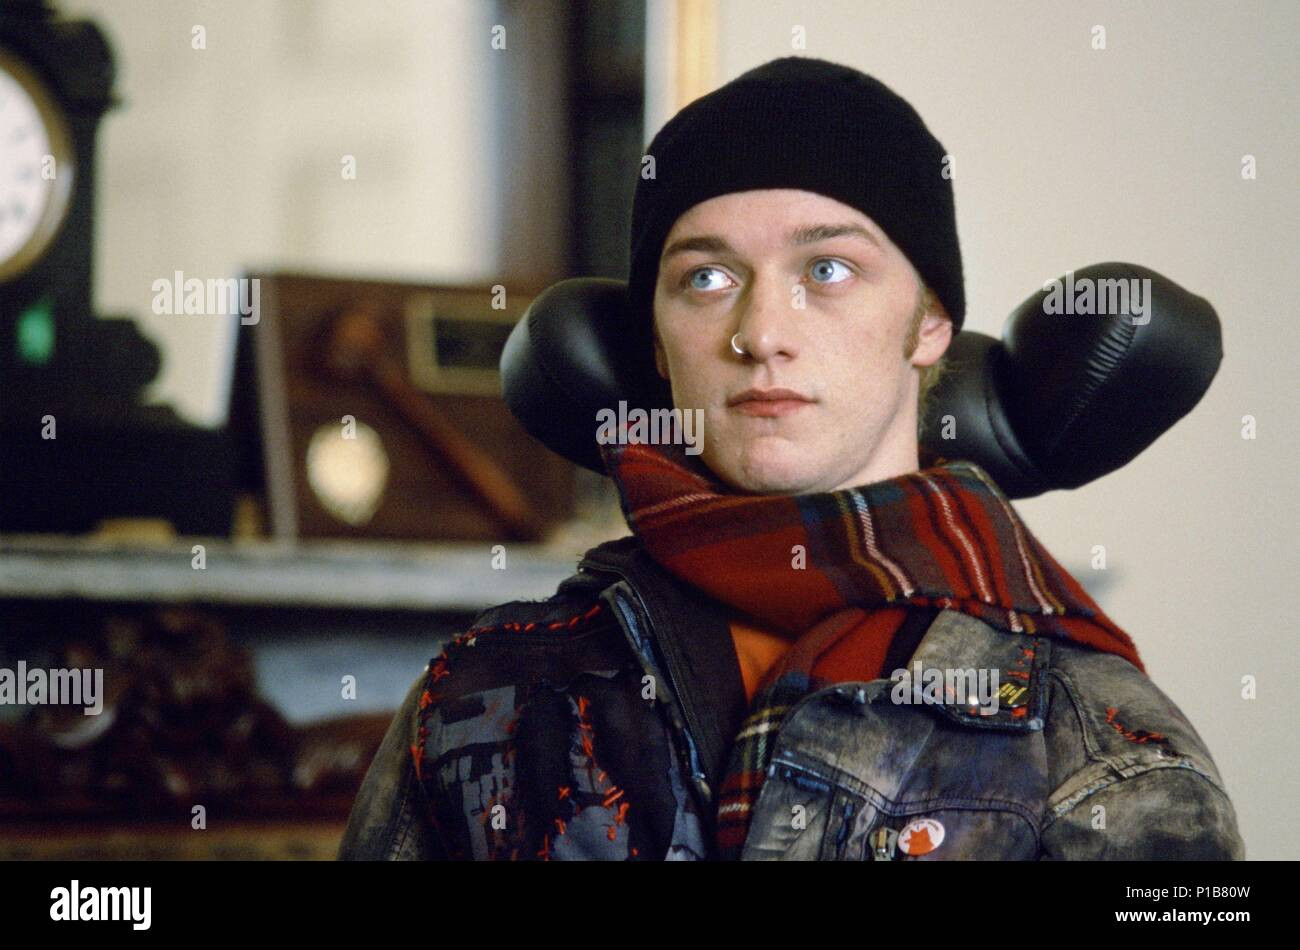 Original Film Title: INSIDE I'M DANCING.  English Title: RORY O'SHEA WAS HERE.  Film Director: DAMIEN O'DONNELL.  Year: 2004.  Stars: JAMES MCAVOY. Credit: FOCUS FEATURES / Album - Stock Image